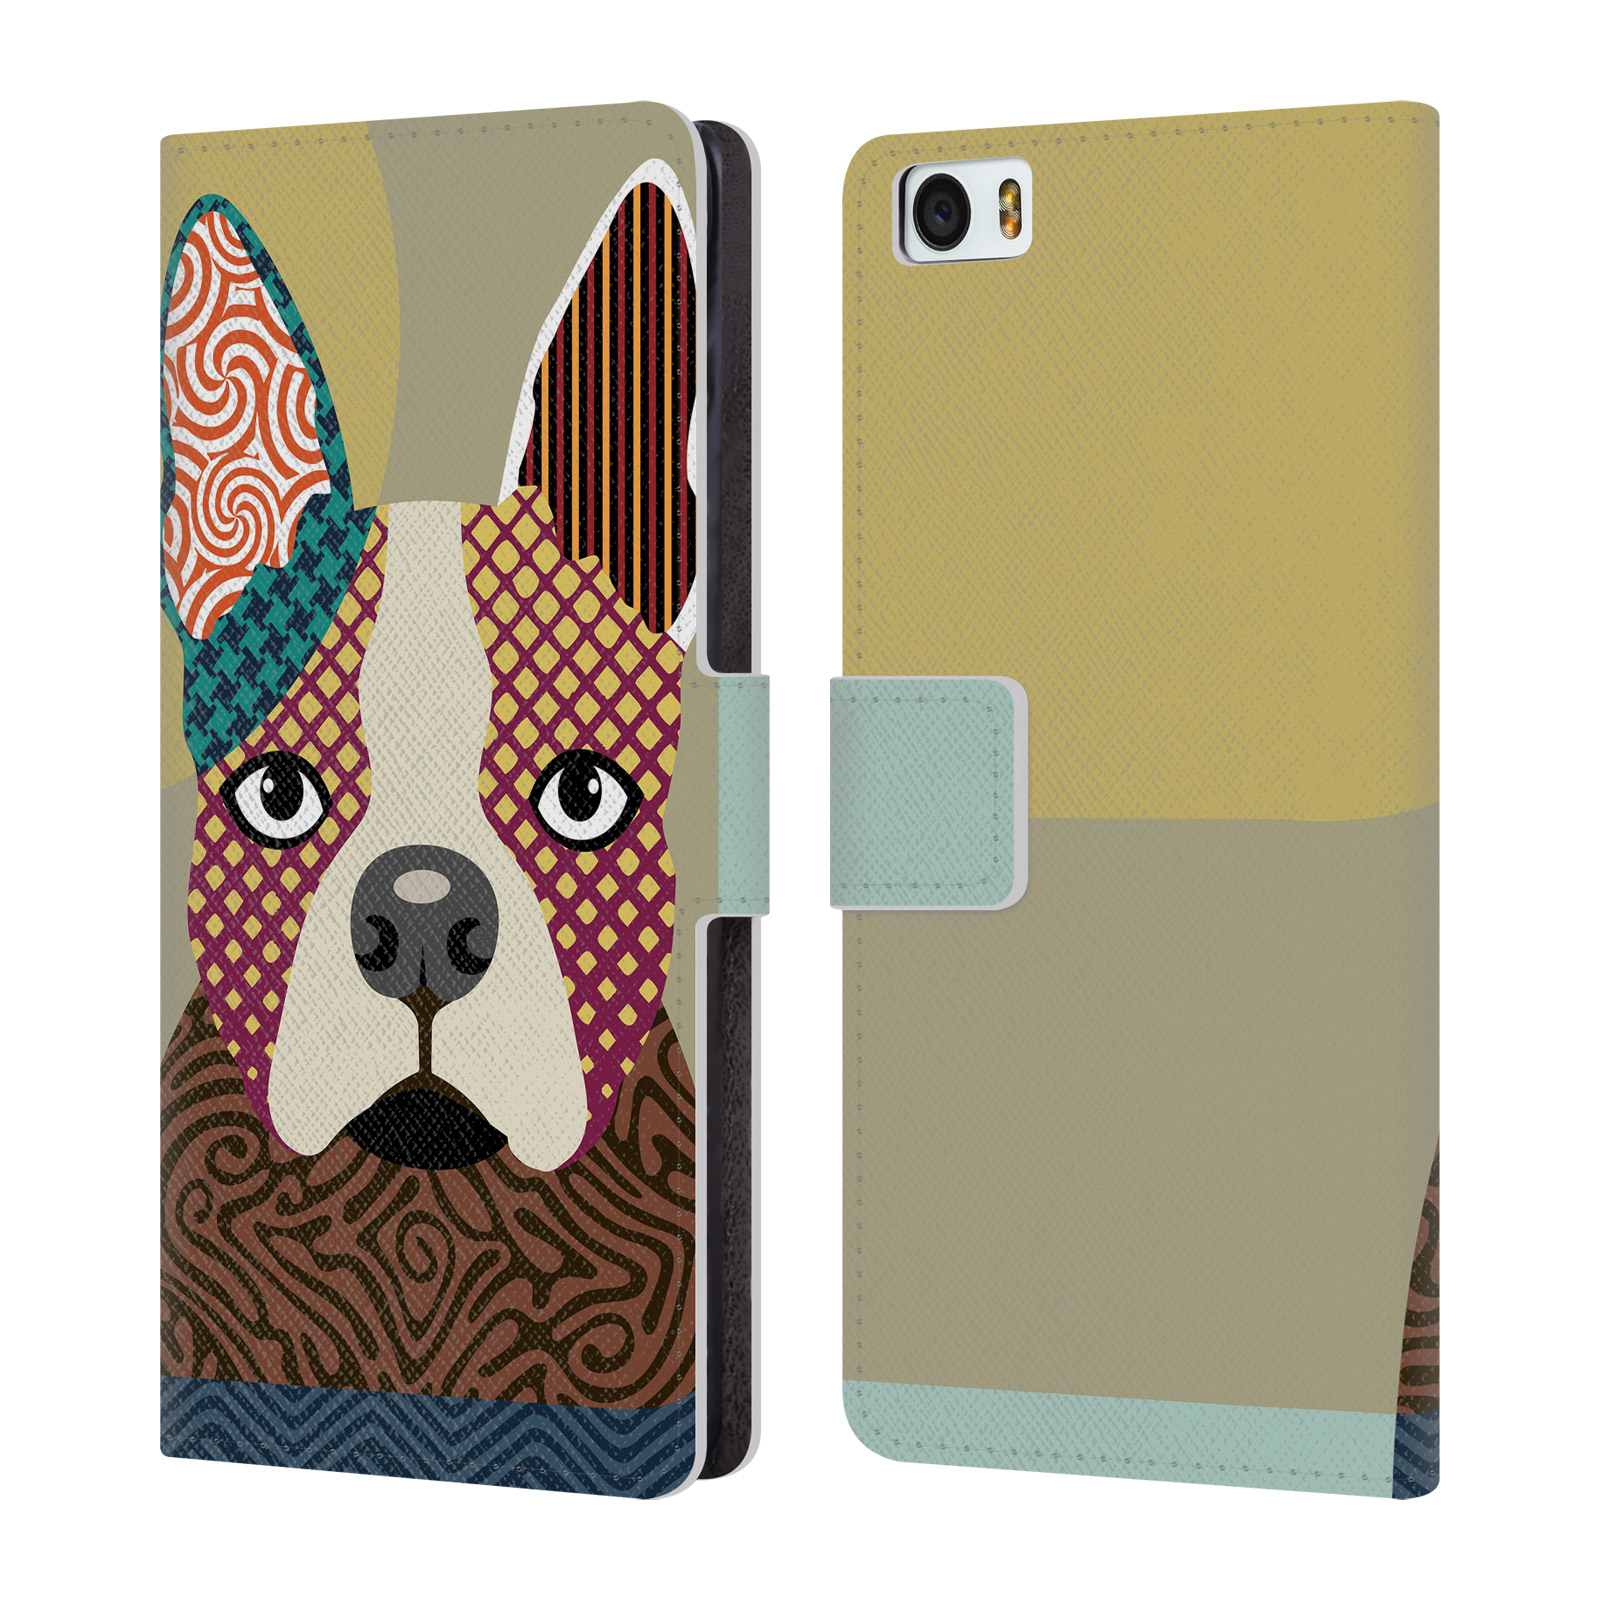 OFFICIAL-LANRE-ADEFIOYE-DOGS-2-LEATHER-BOOK-WALLET-CASE-COVER-FOR-XIAOMI-PHONES